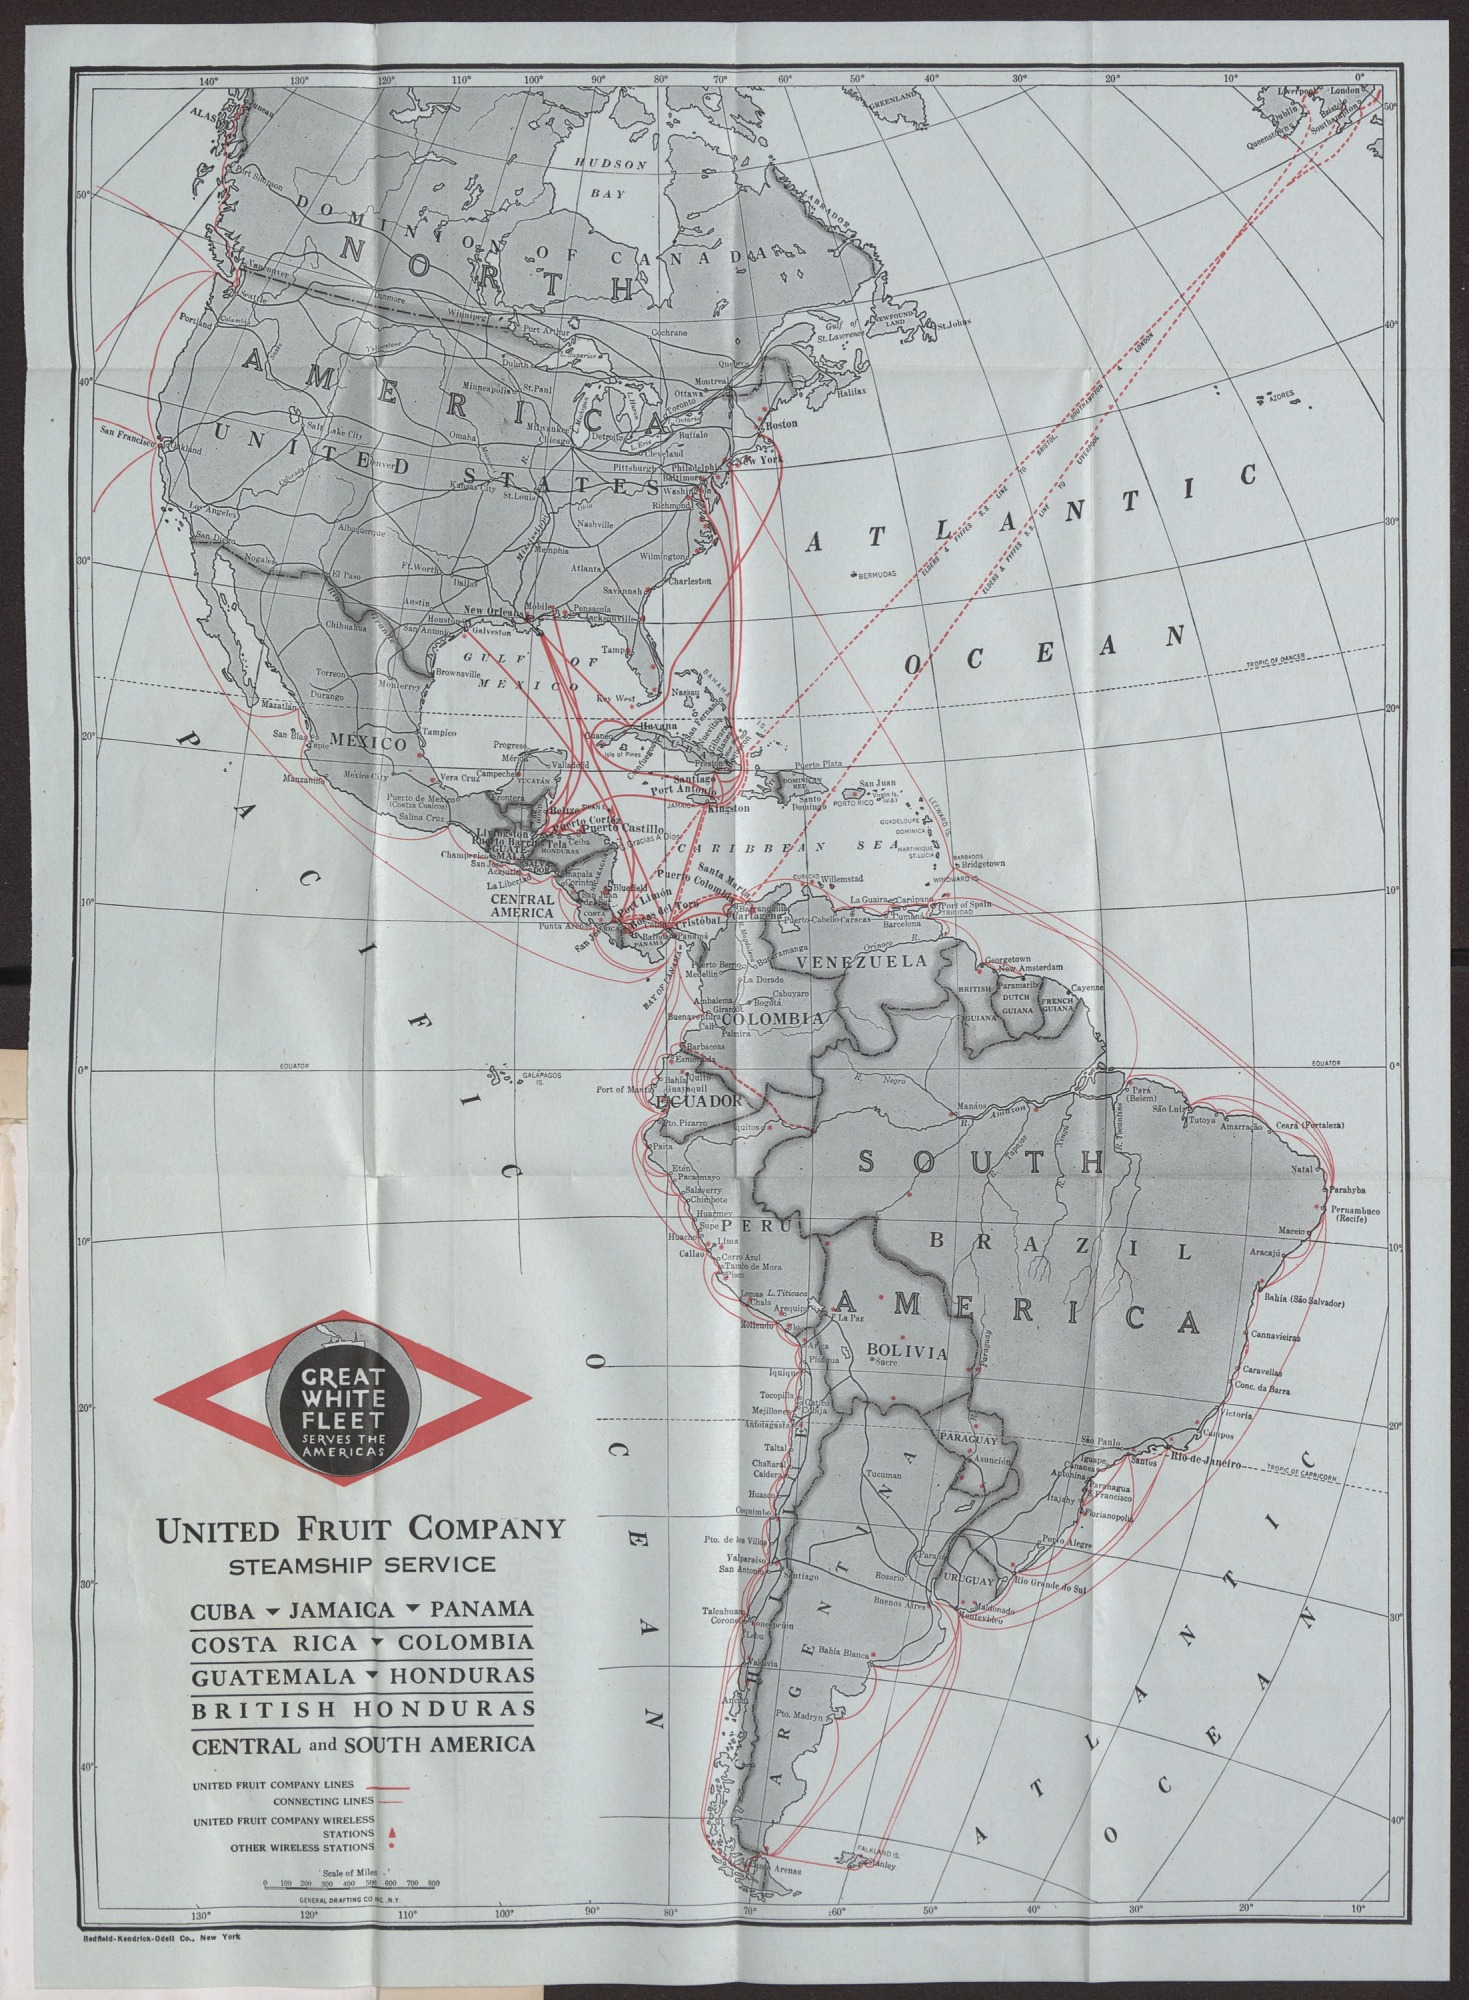 Map of the Routes of the United Fruit Company Steam Ship Service